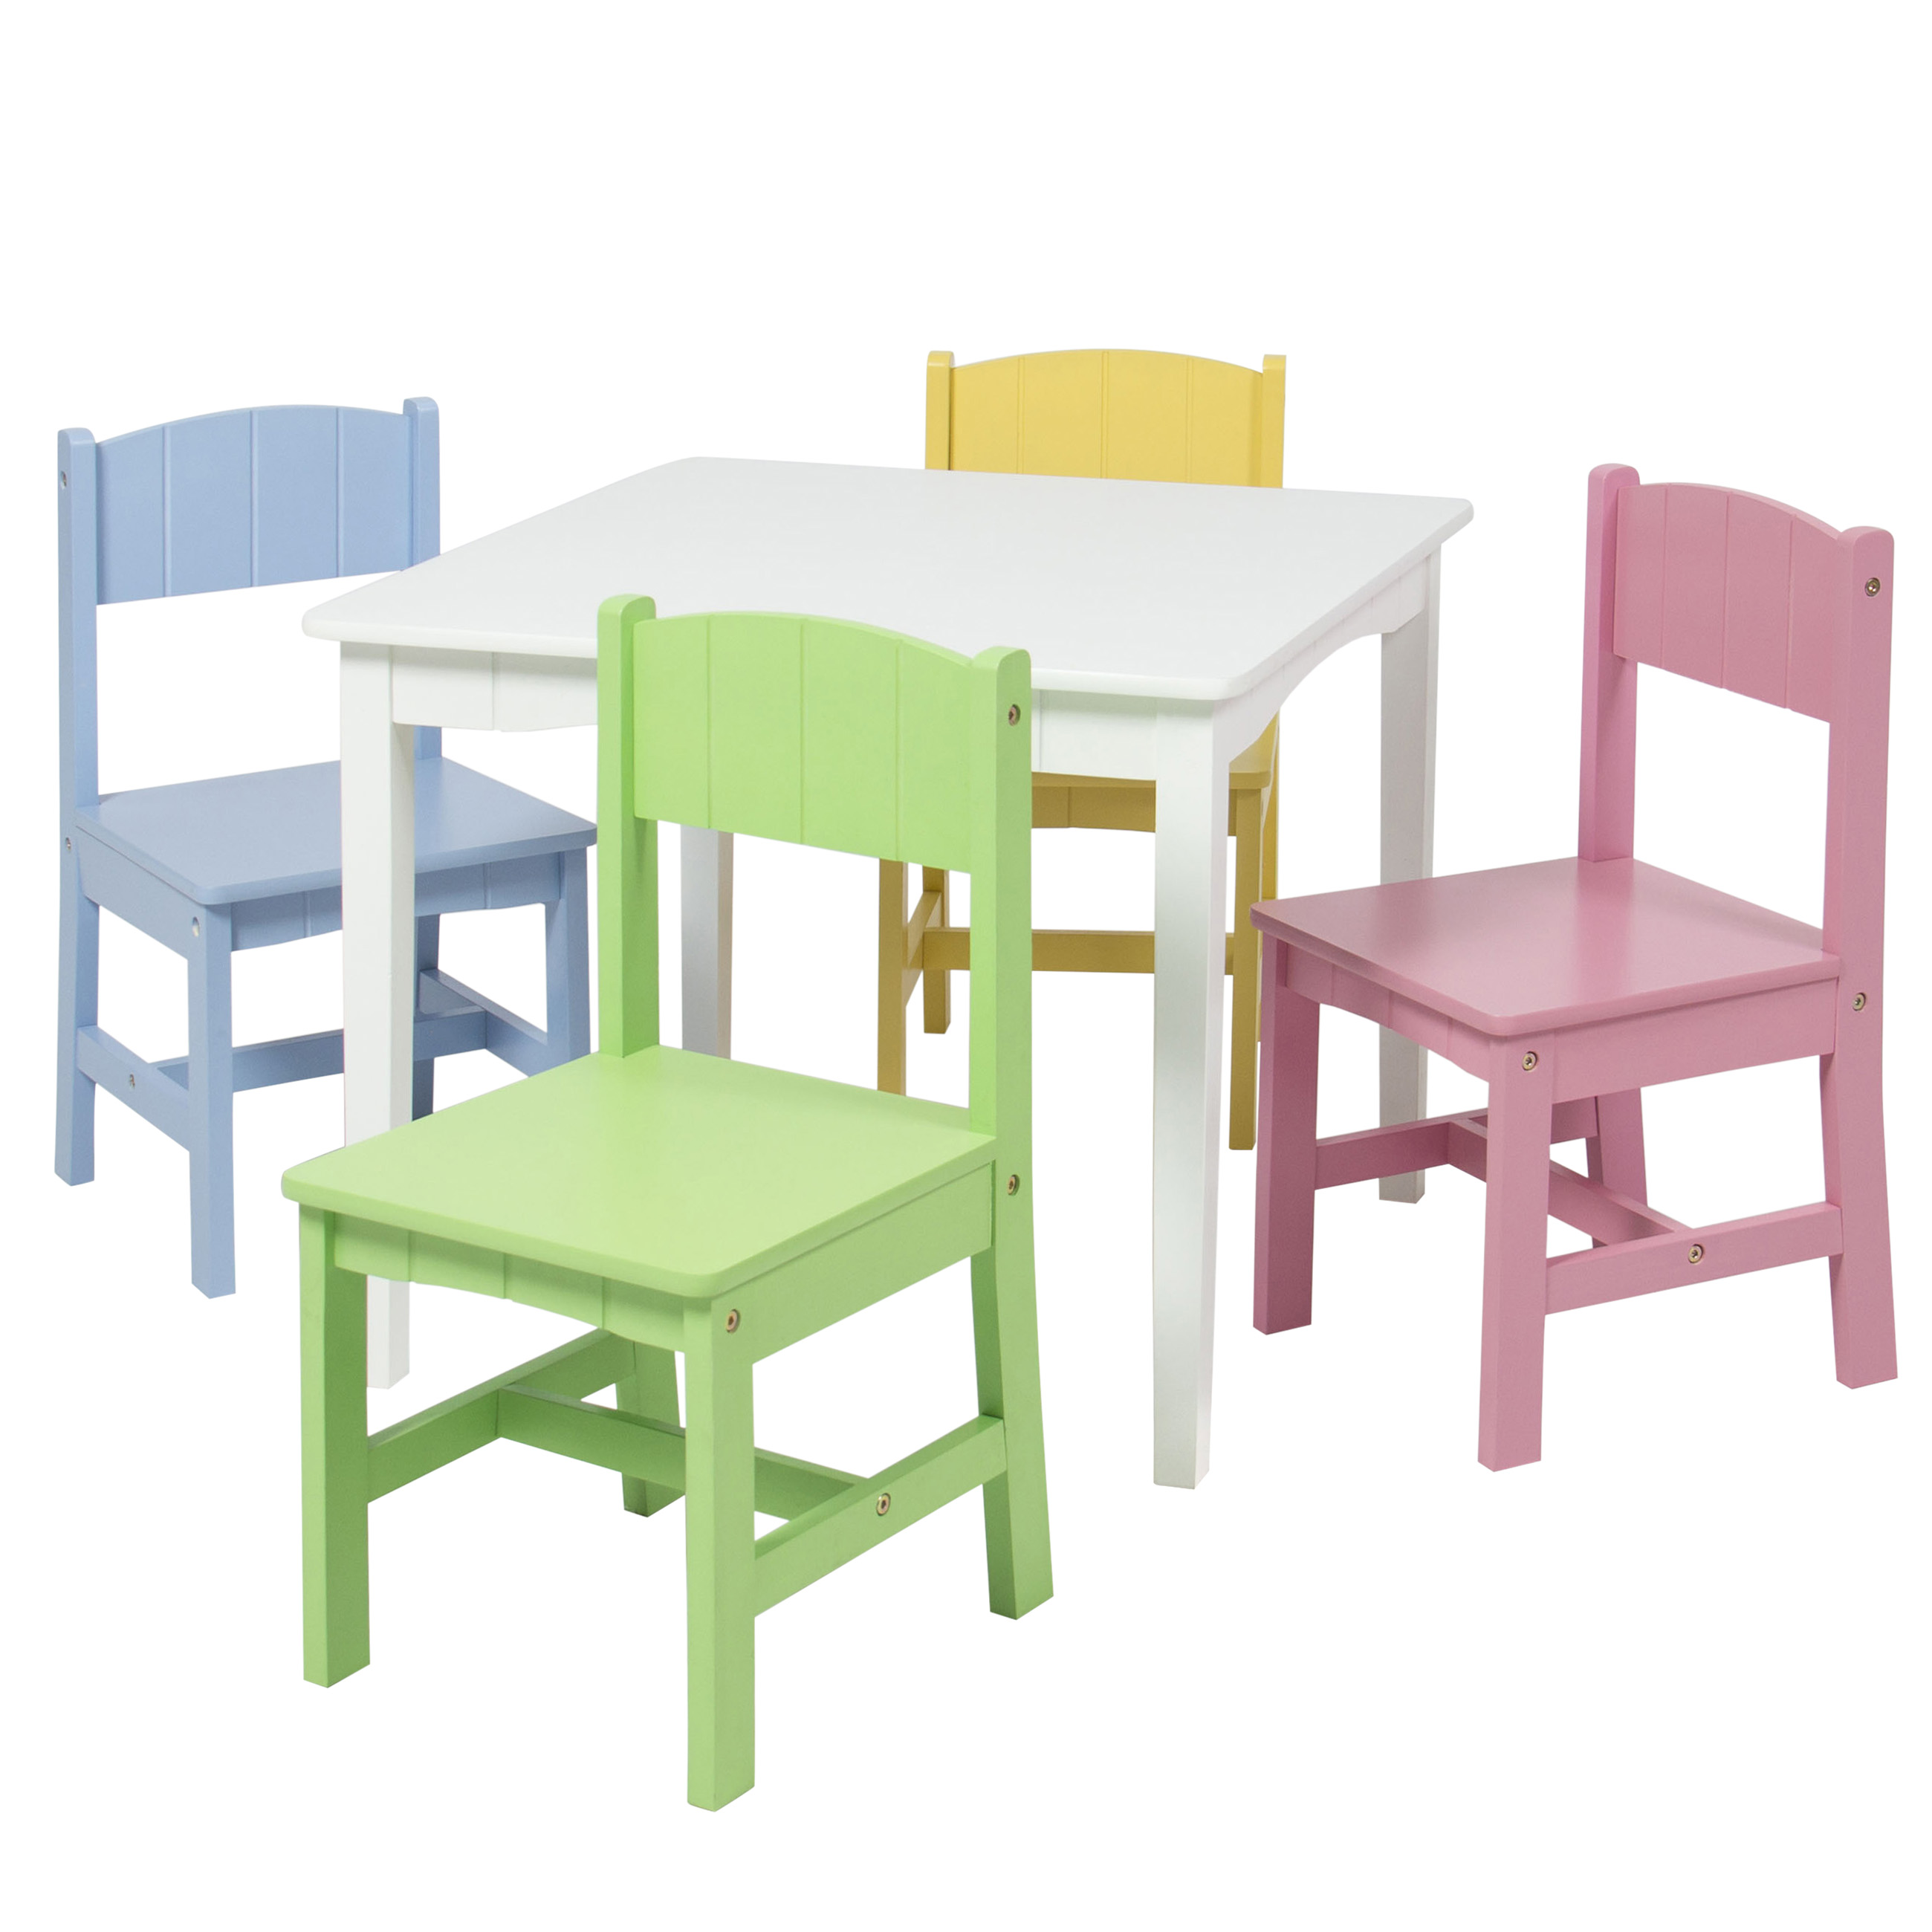 Best Choice Products Wooden Kids Table And 4 Chairs Set Furniture Play Area School Home  sc 1 st  Walmart & Kidsu0027 Table u0026 Chair Sets - Walmart.com